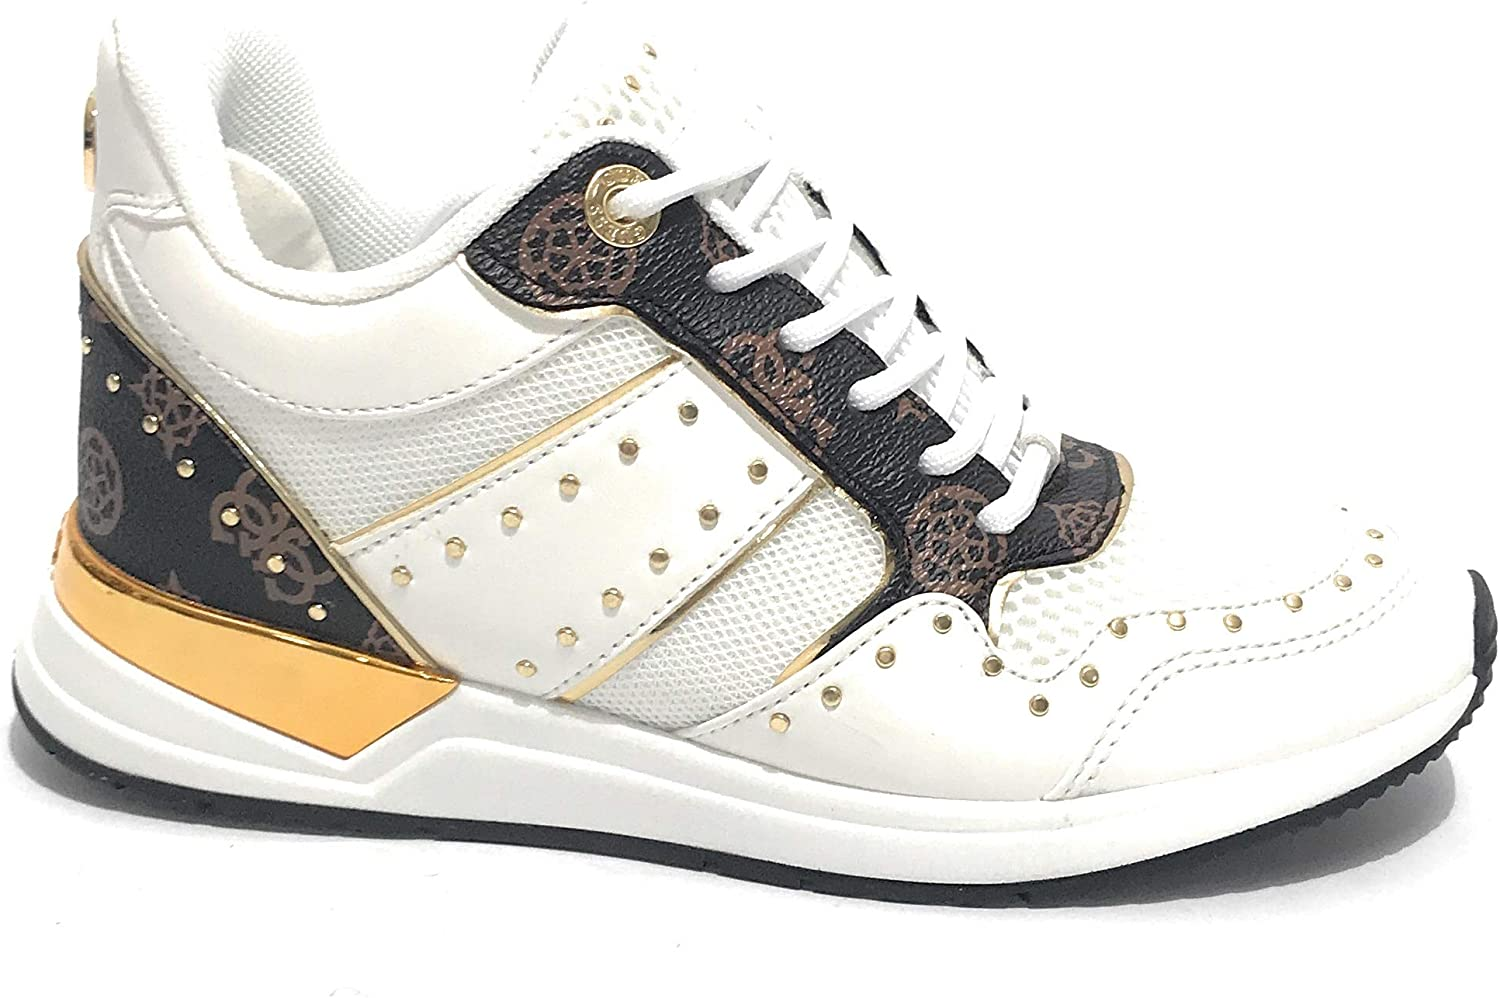 Guess Scarpe Donna Sneaker Running Rejjy in Ecopelle/Tessuto Bianco/Brown DS20GU03 Animalier